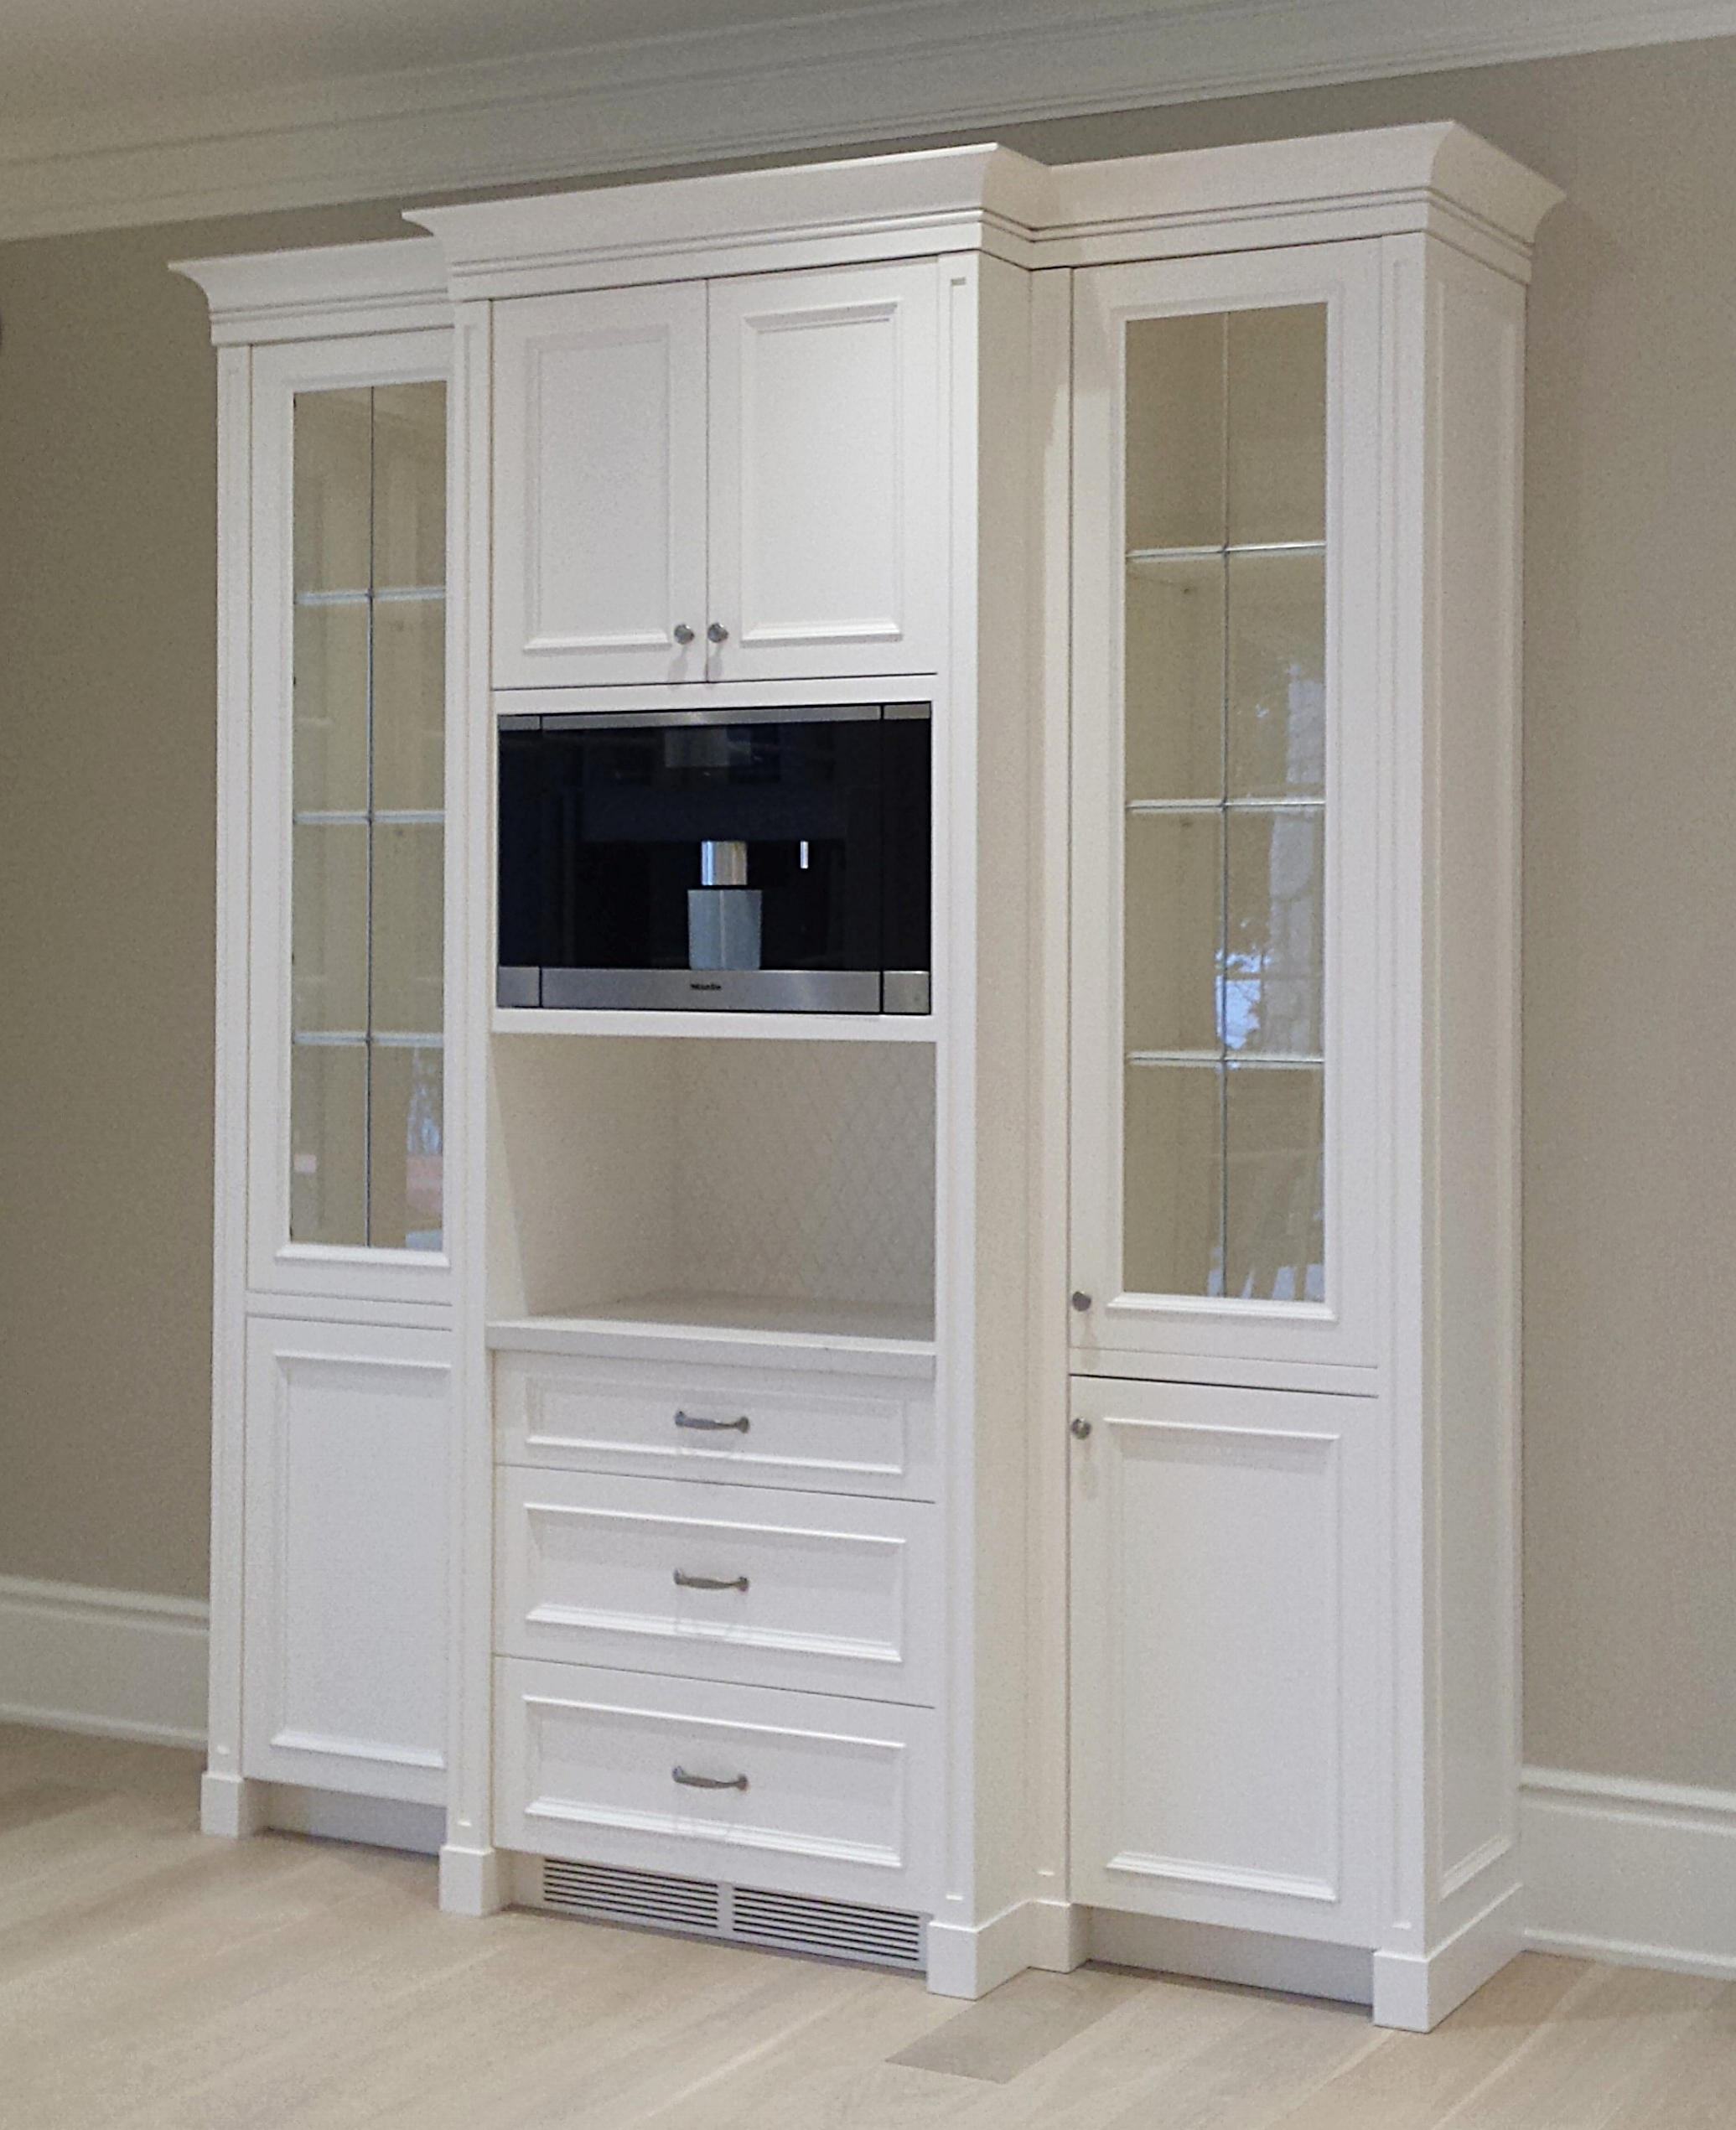 transitional-white-kitchen-coffee-station-cabinetry.jpg